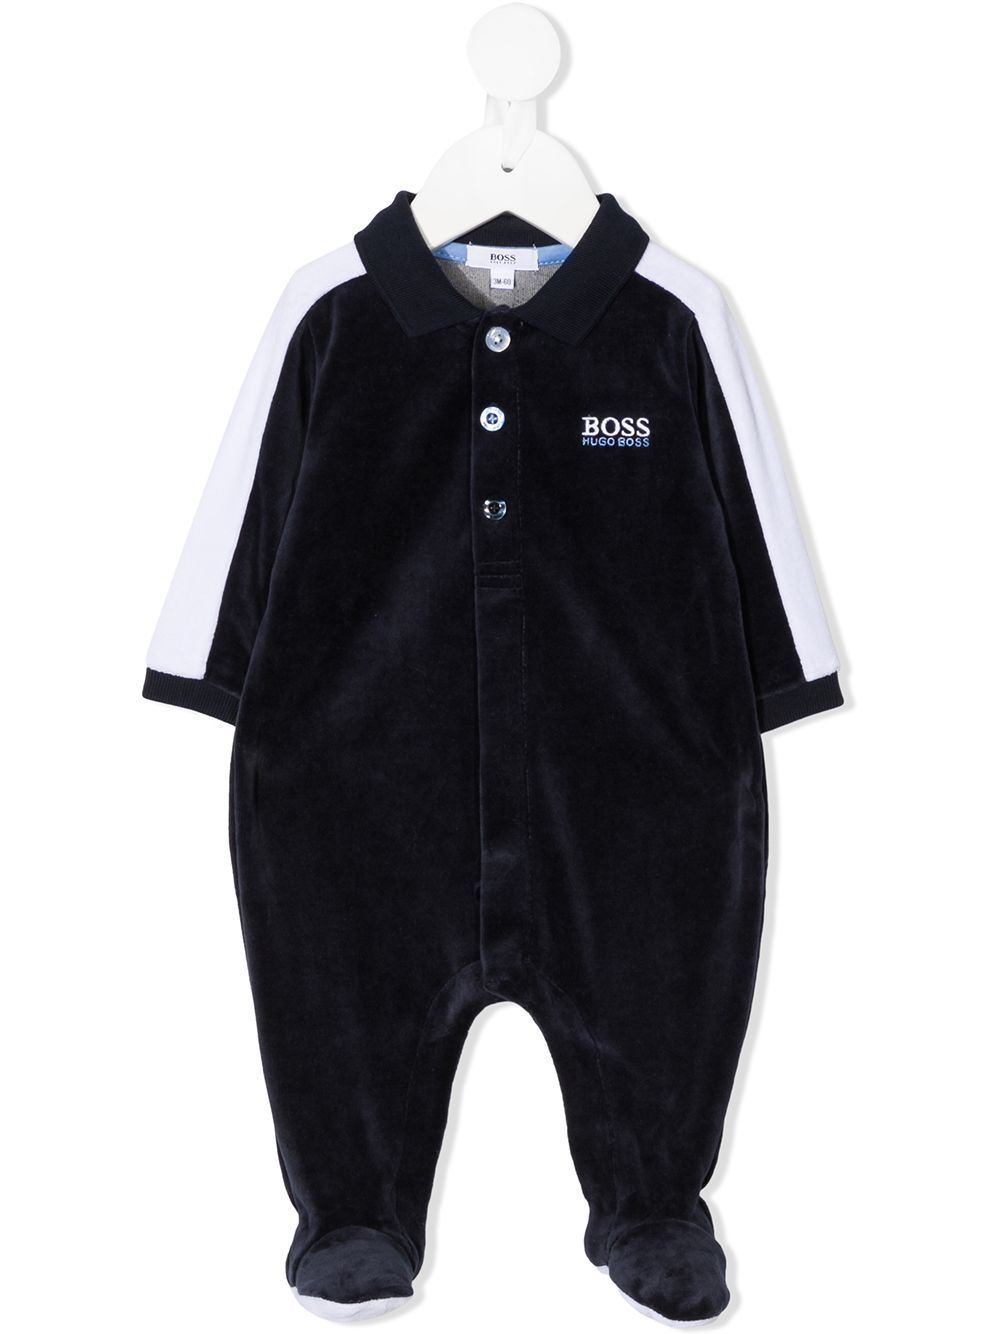 BOSS KIDS Logo Night Set Navy/White